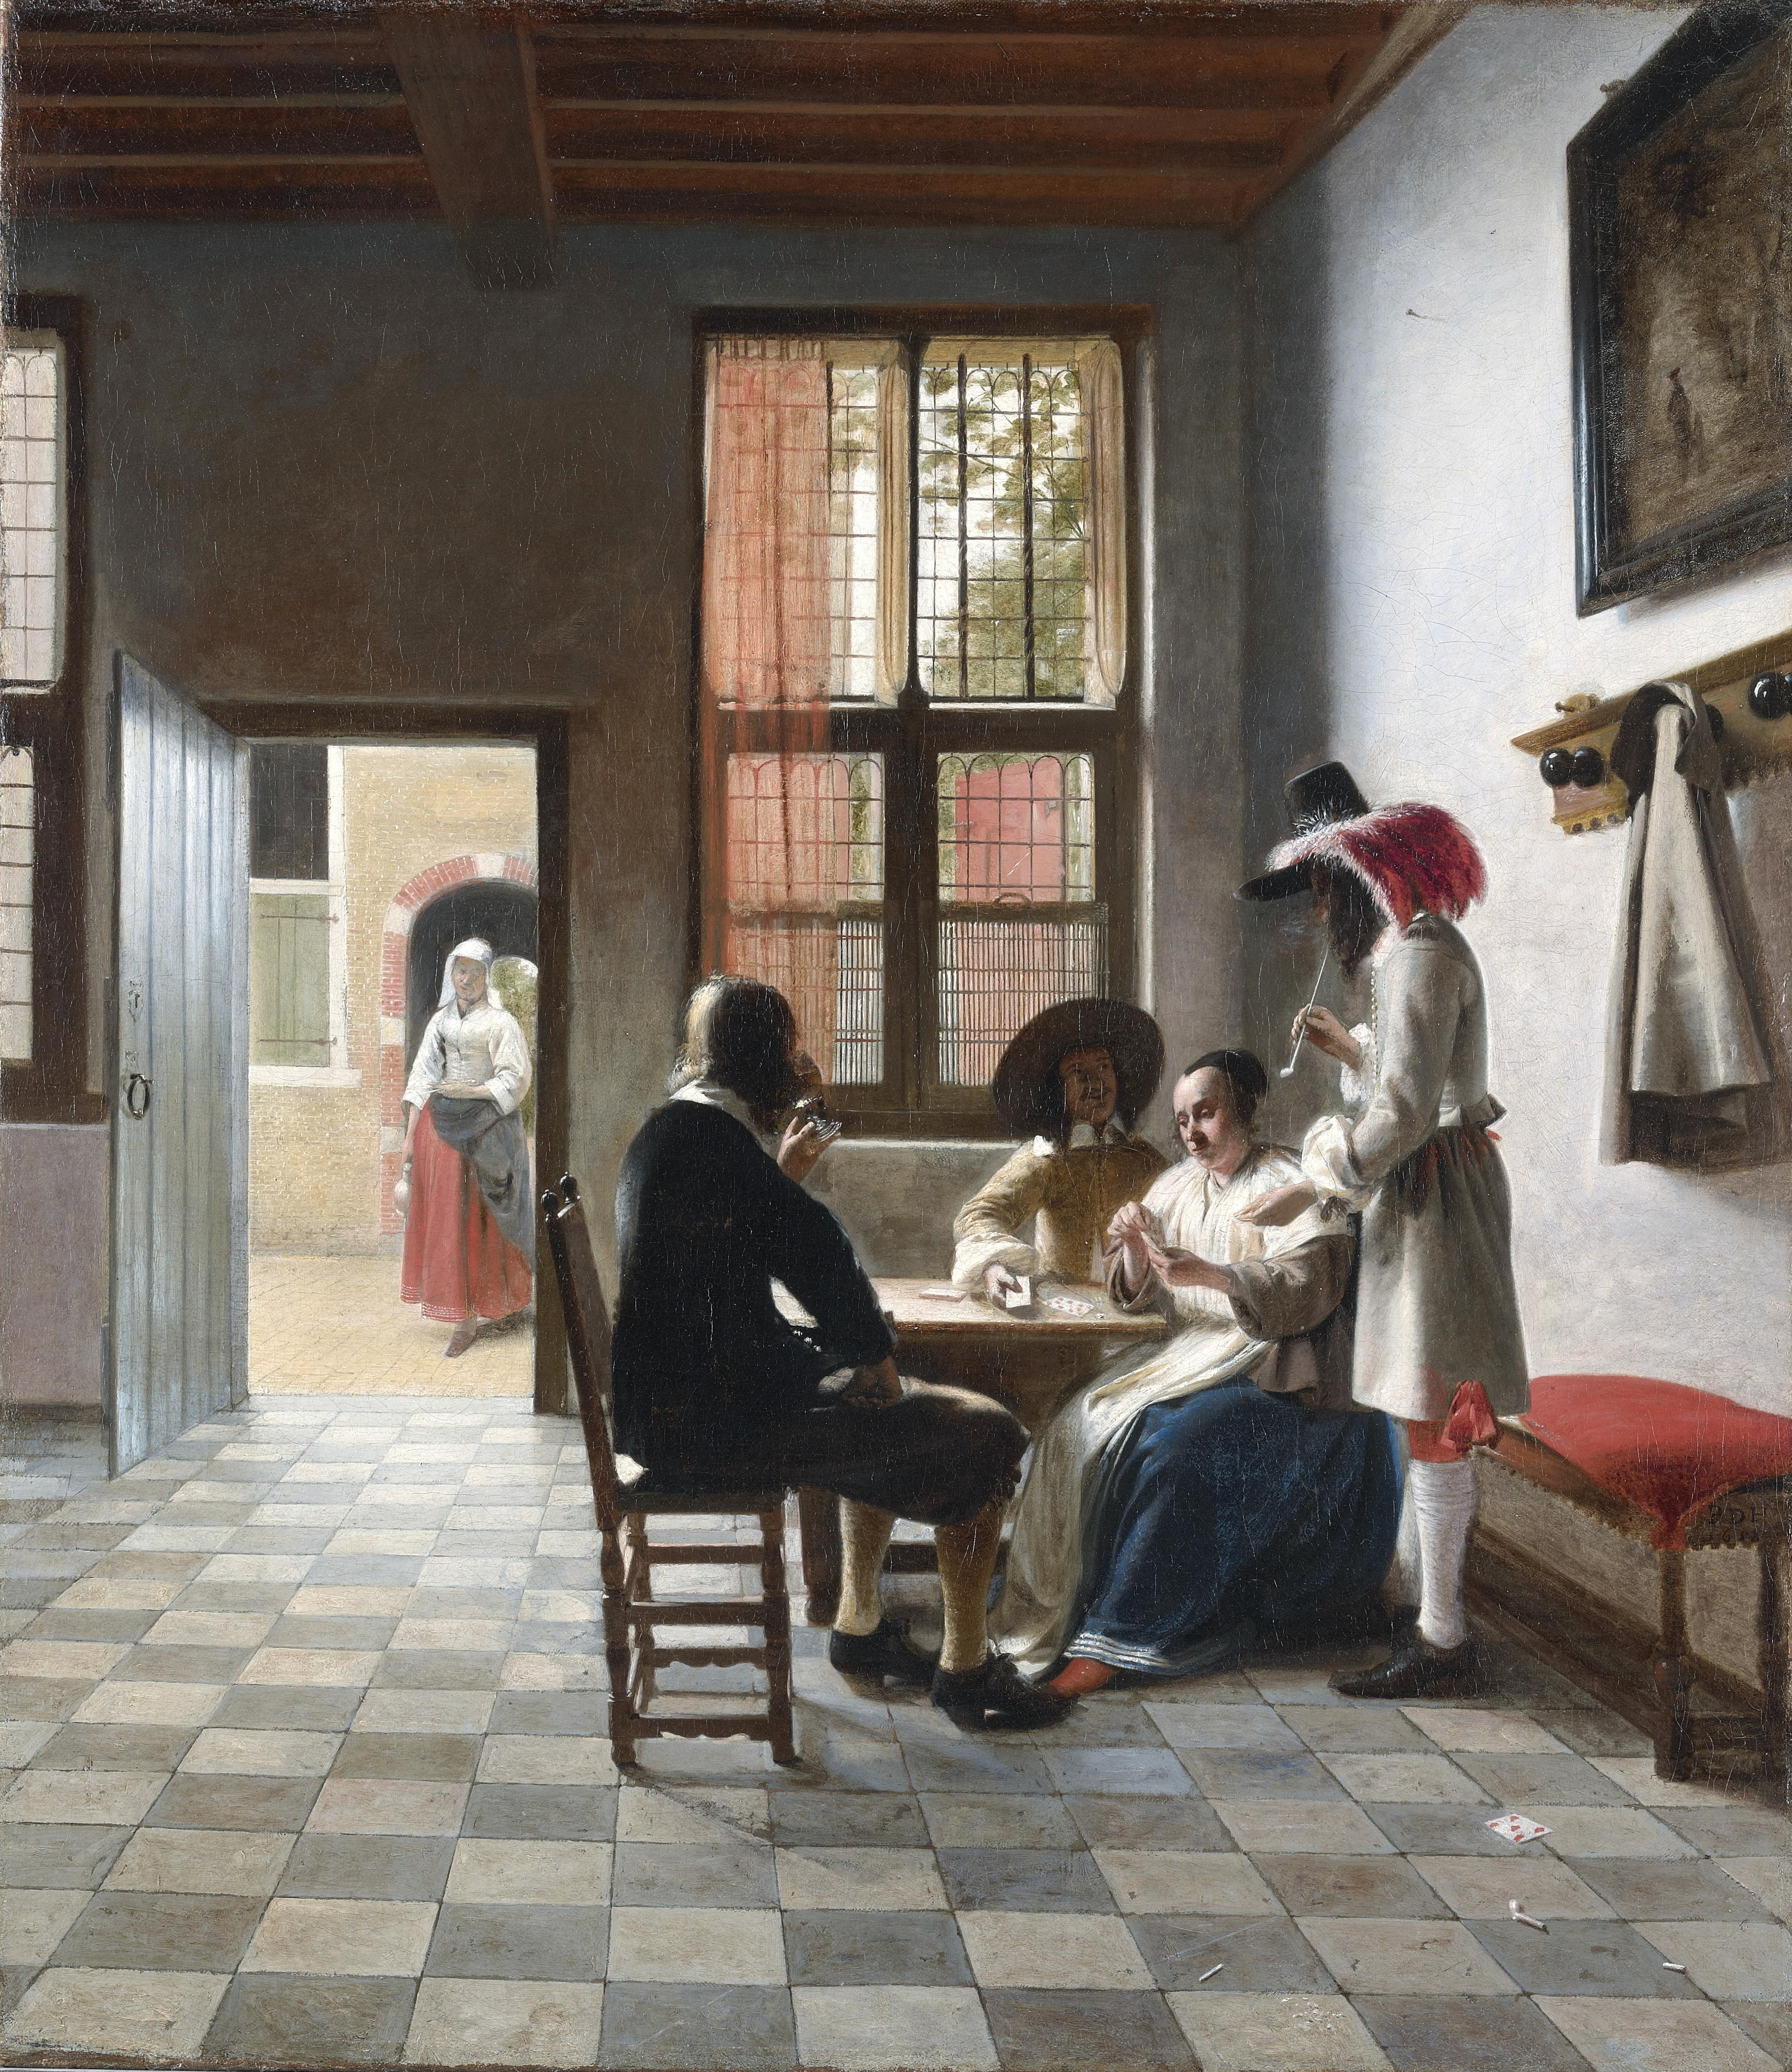 Pieter de Hooch (1629-1684), Cardplayers in a Sunlit Room, 1658 Royal Collection Trust, London